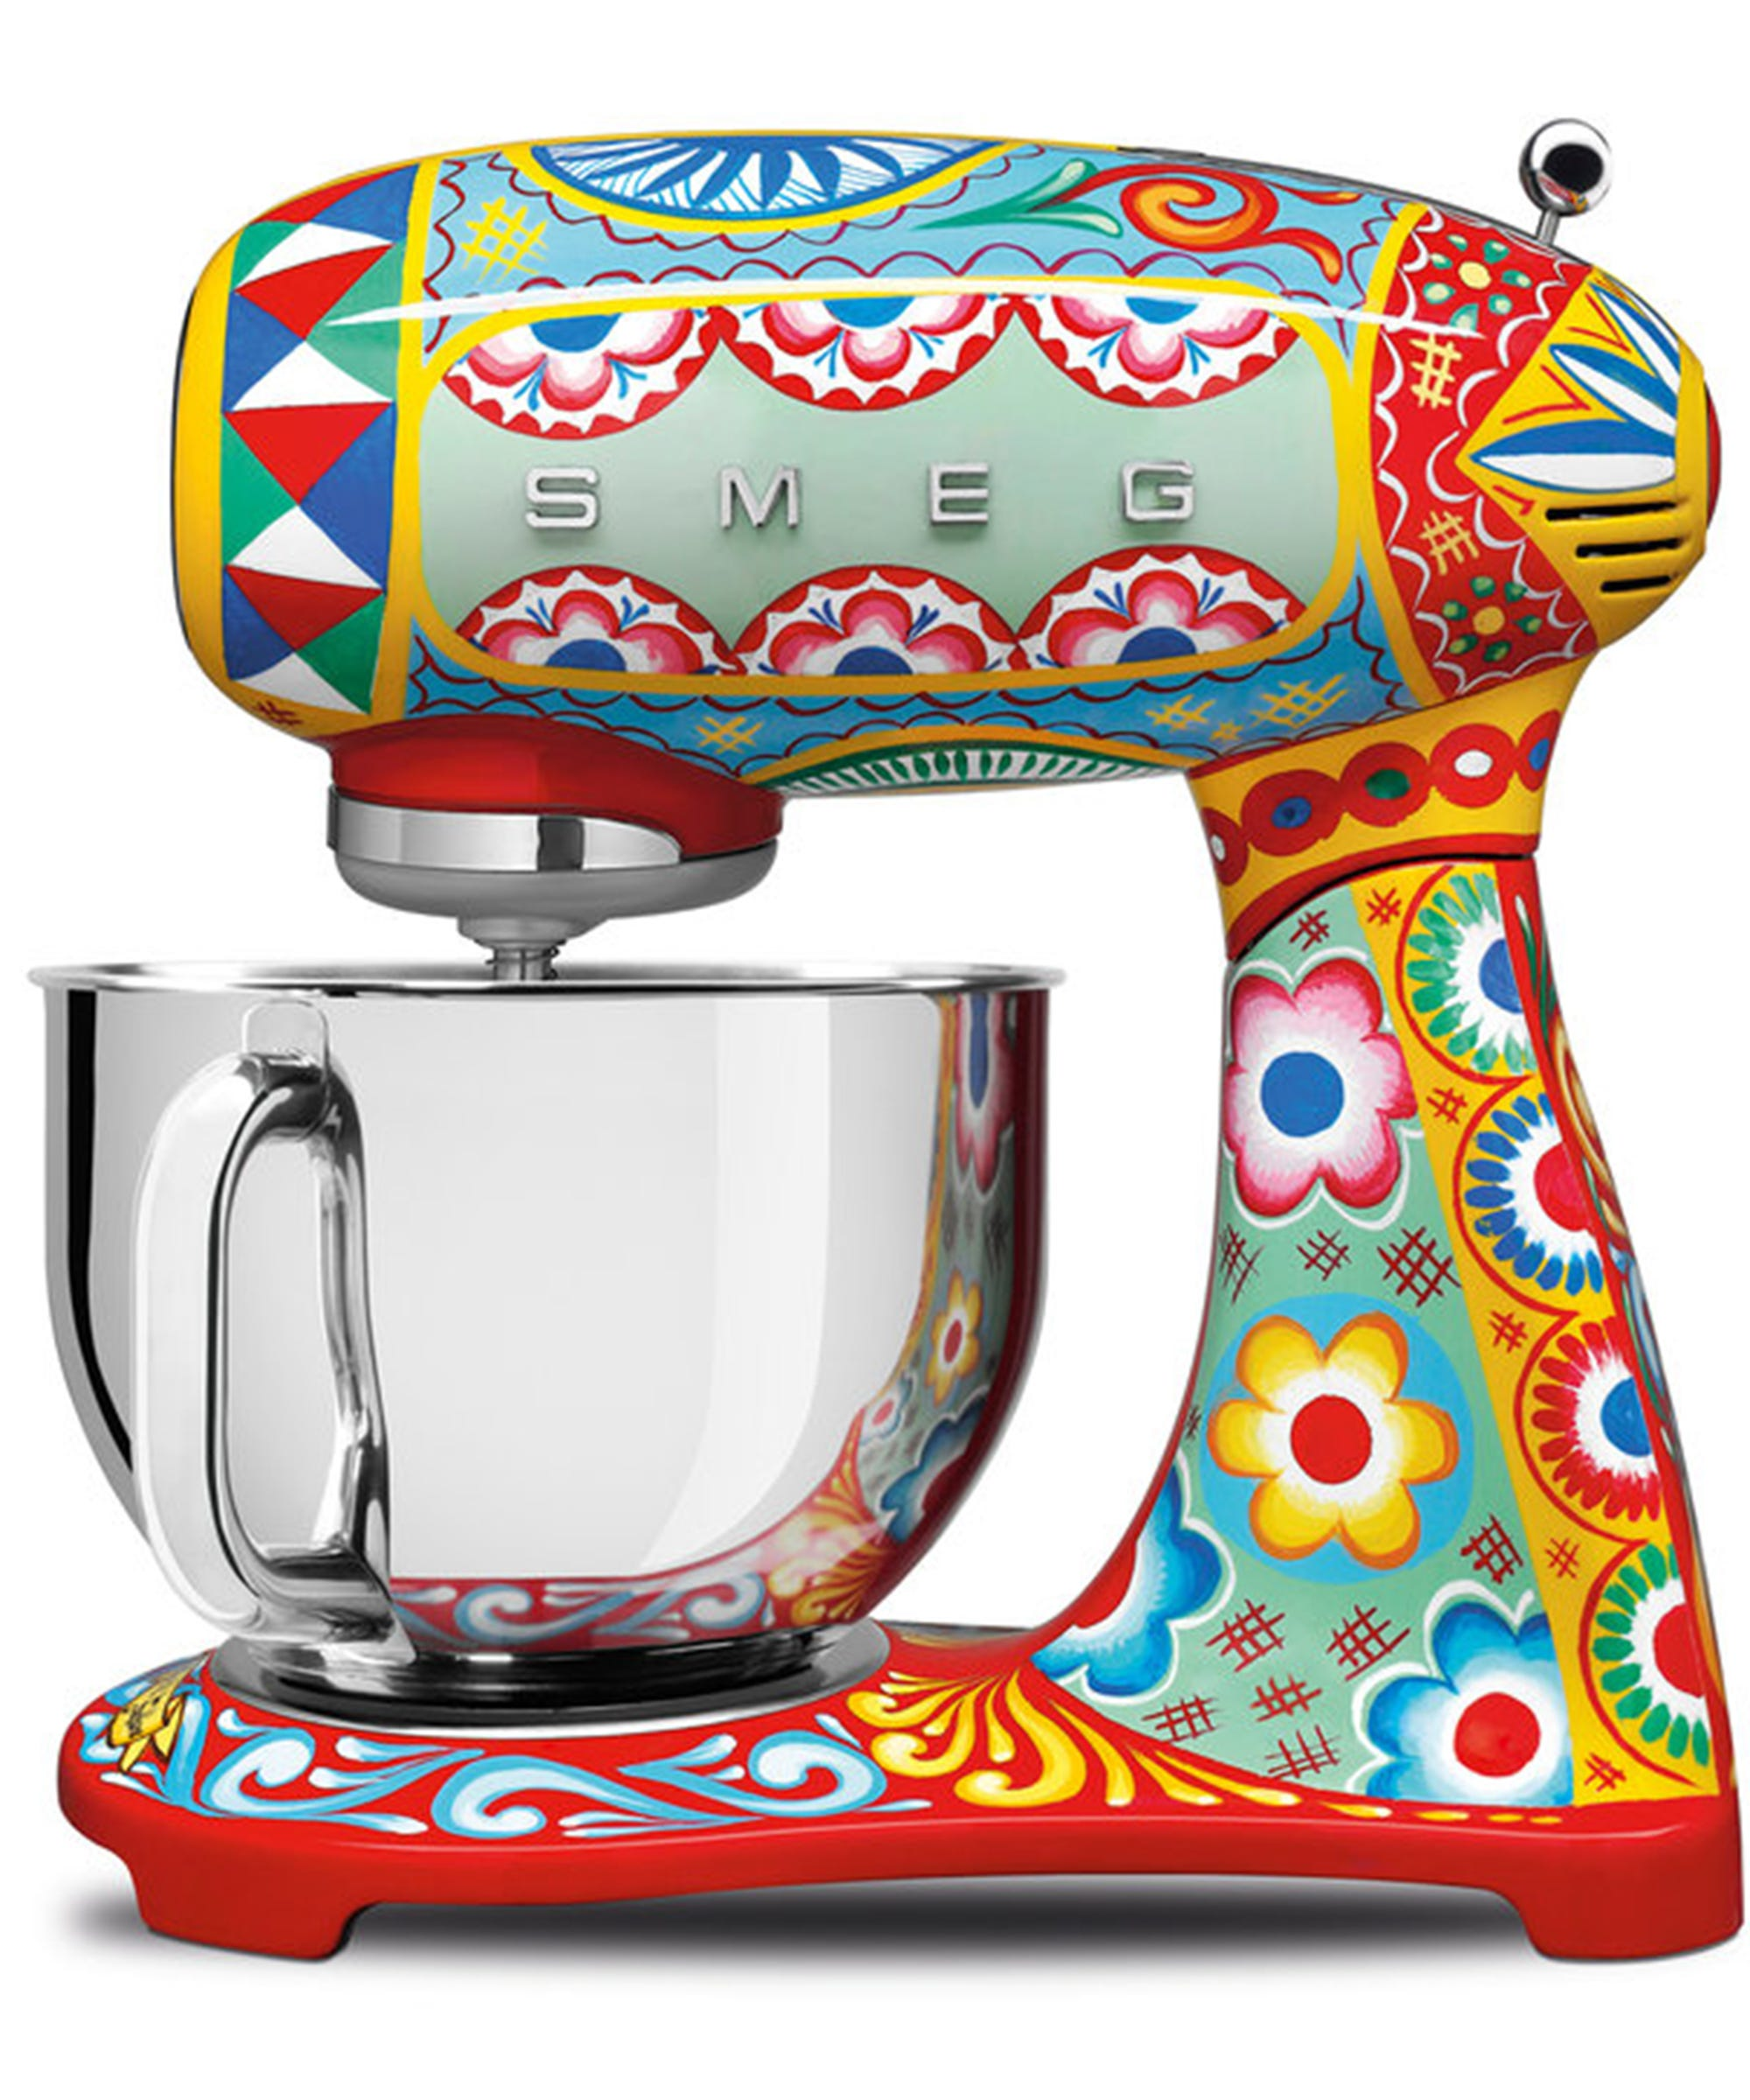 Uncategorized Kitchen Appliances London dolce gabbana smeg kitchen appliance collection